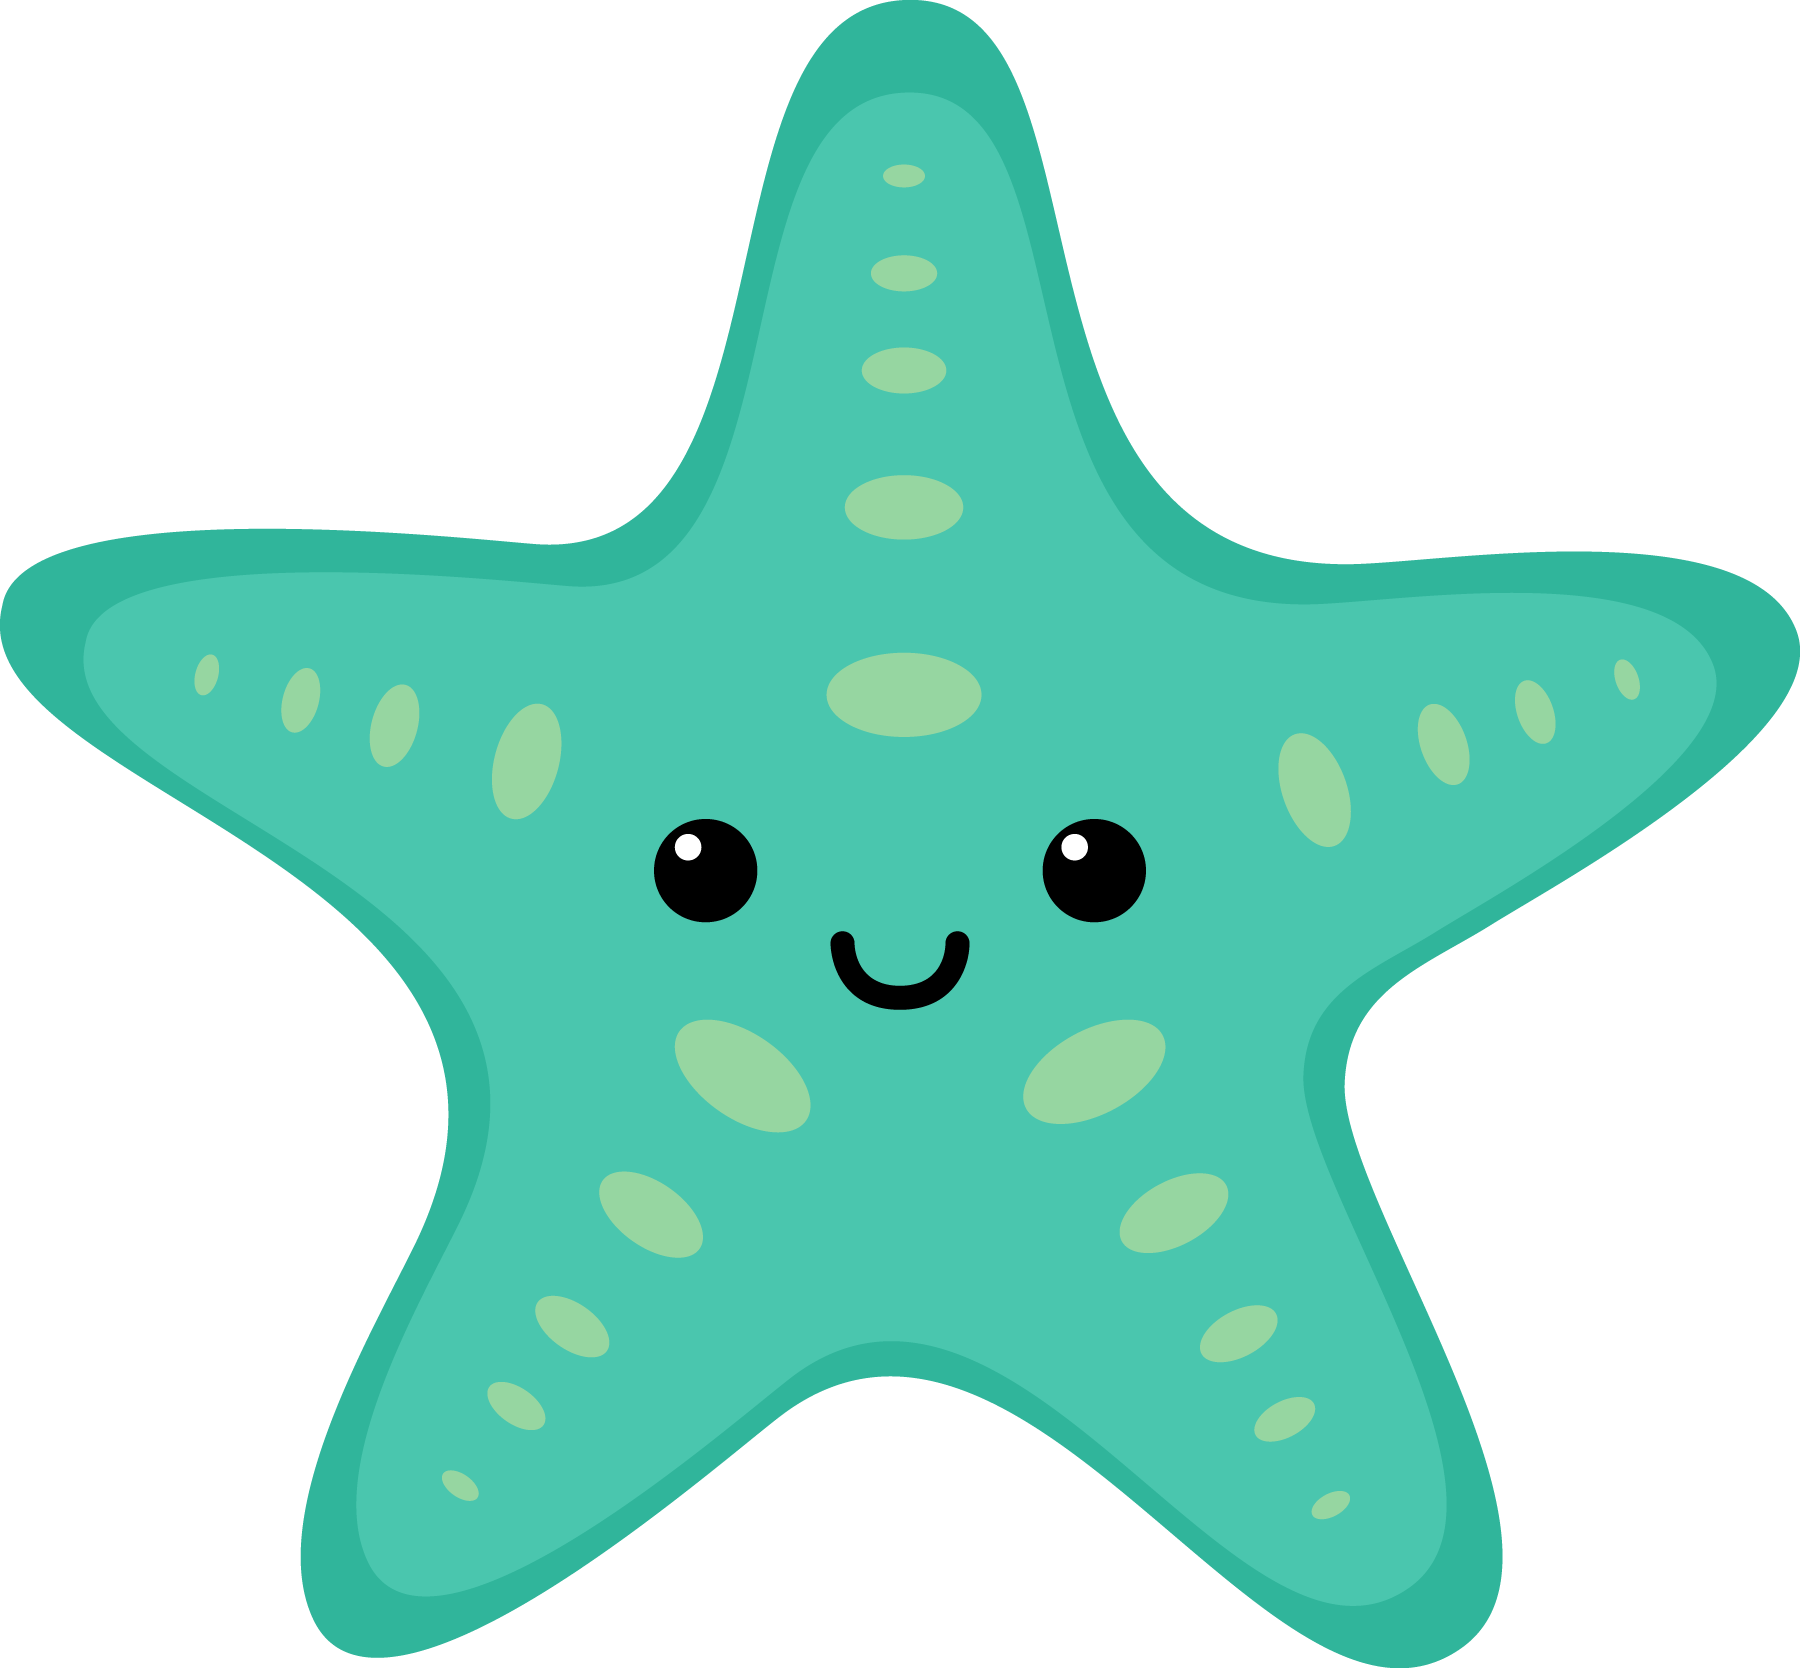 sea star clipart turquoise #1.